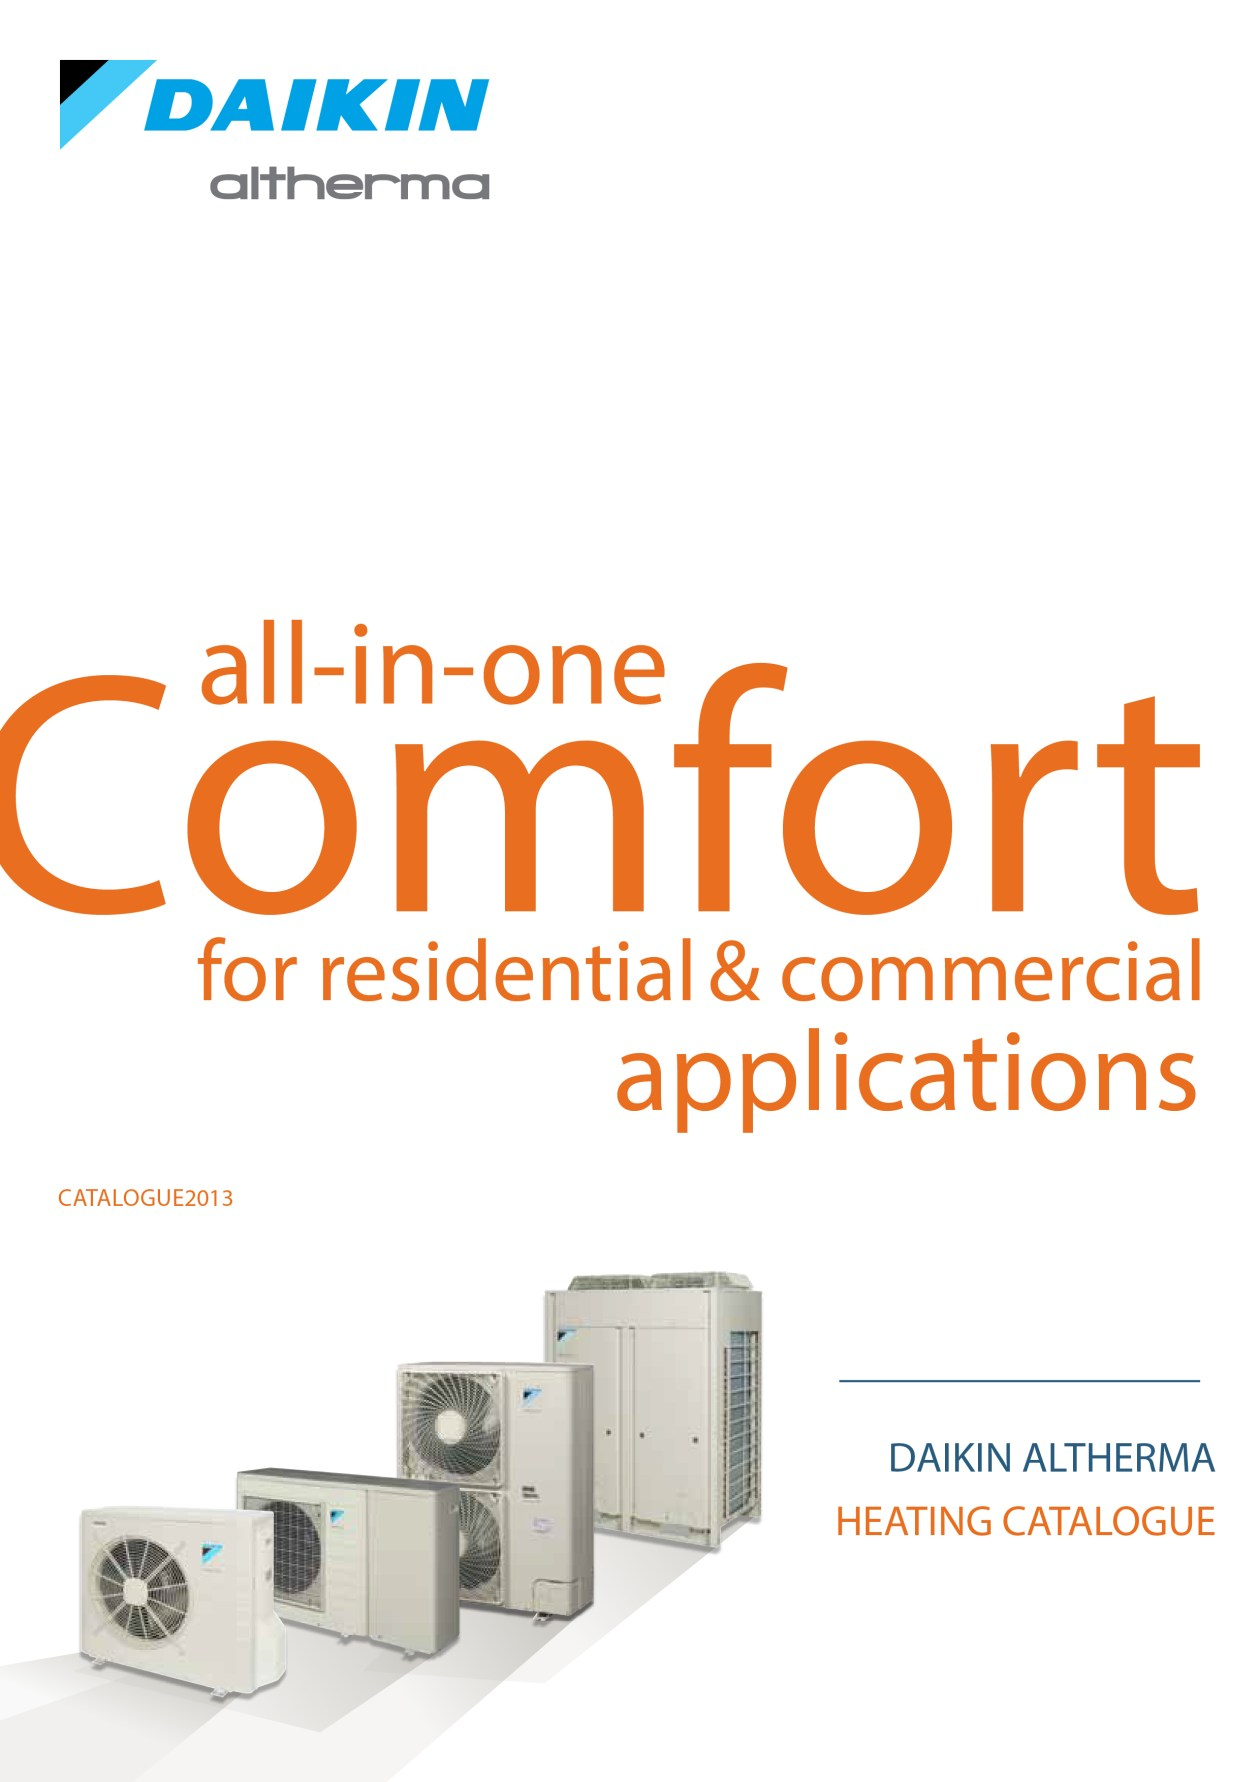 Daikin Altherma_full catalogue_ECPEN12-721_P2_Catalogues_English-01